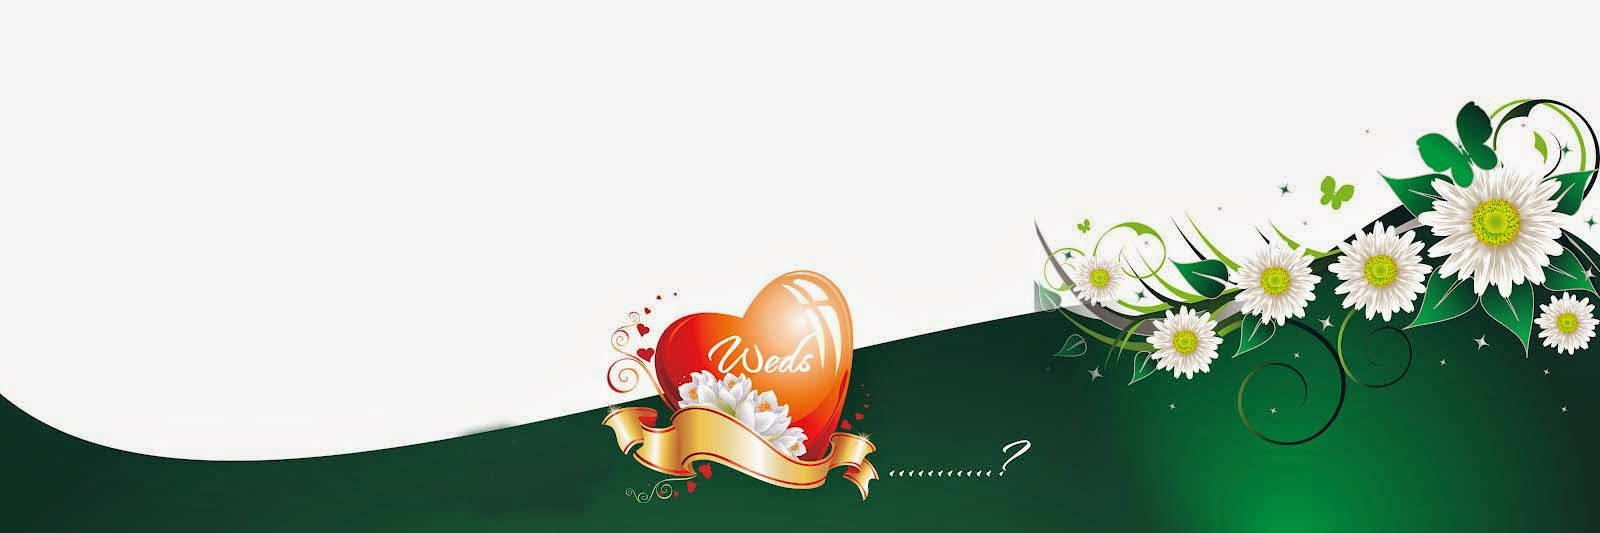 Marriage Background Png Free Marriage Background Png Transparent Images 77211 Pngio